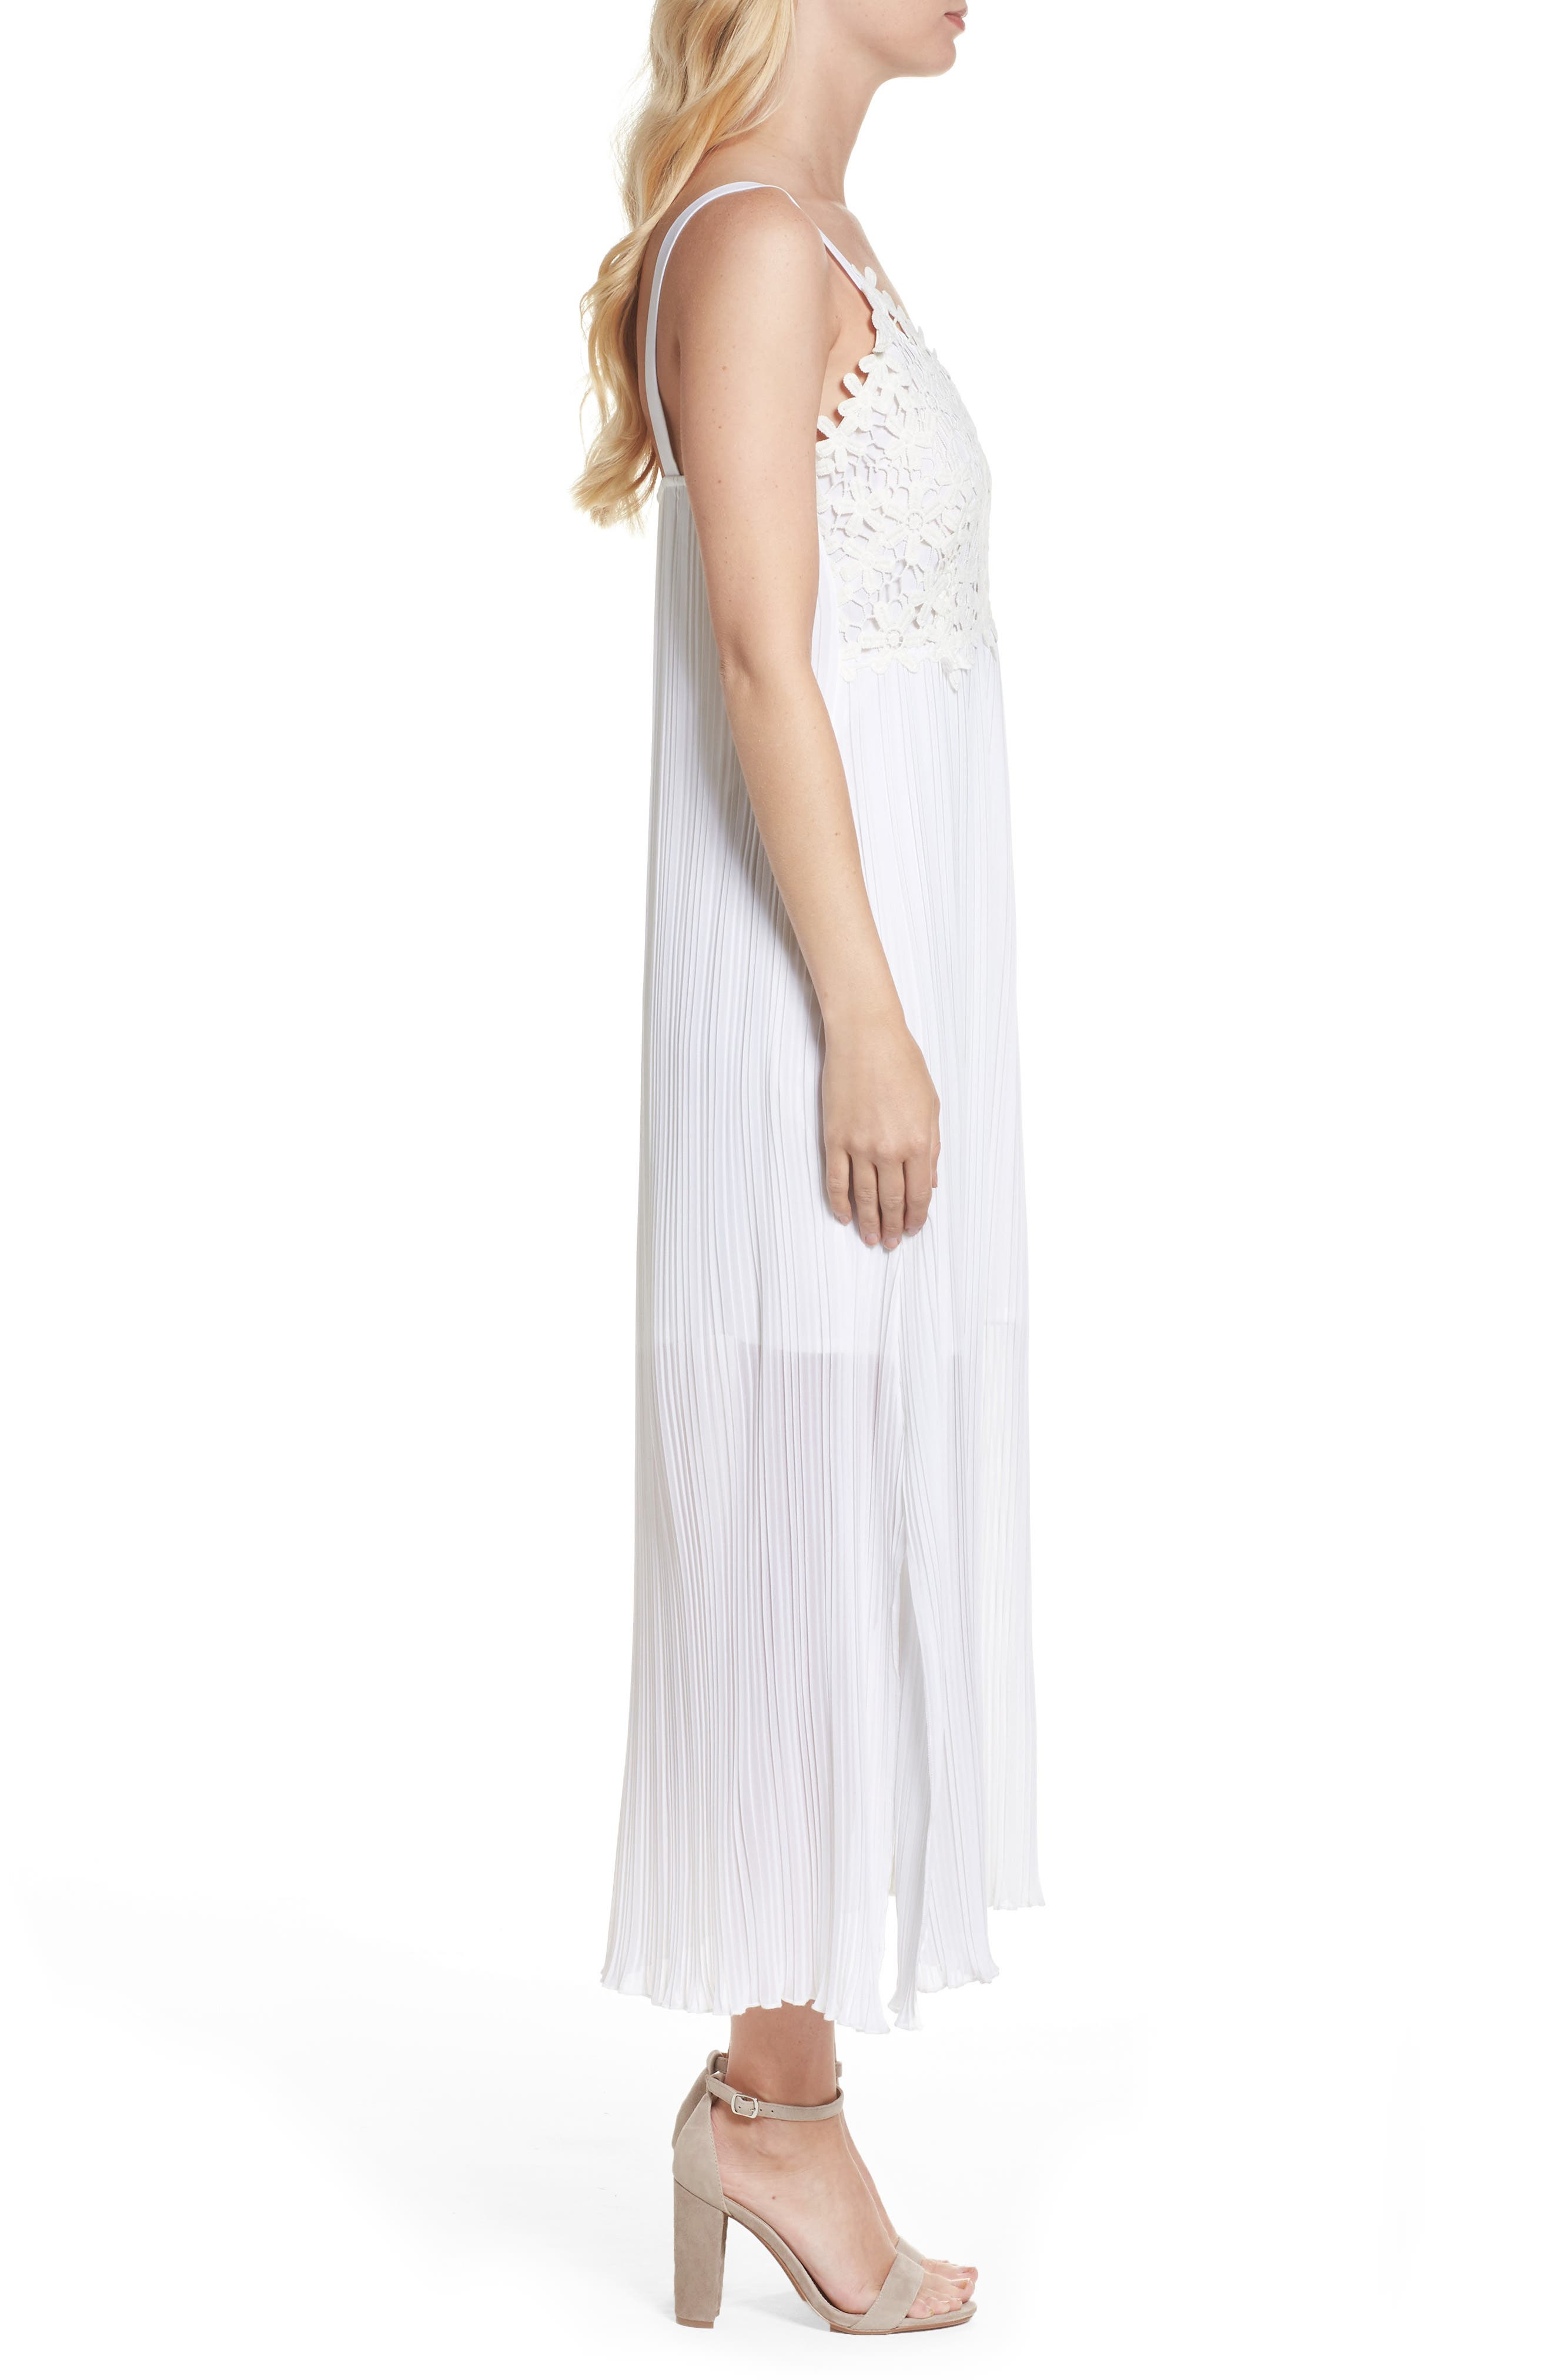 French Coonection Posy Lace Midi Dress,                             Alternate thumbnail 3, color,                             101